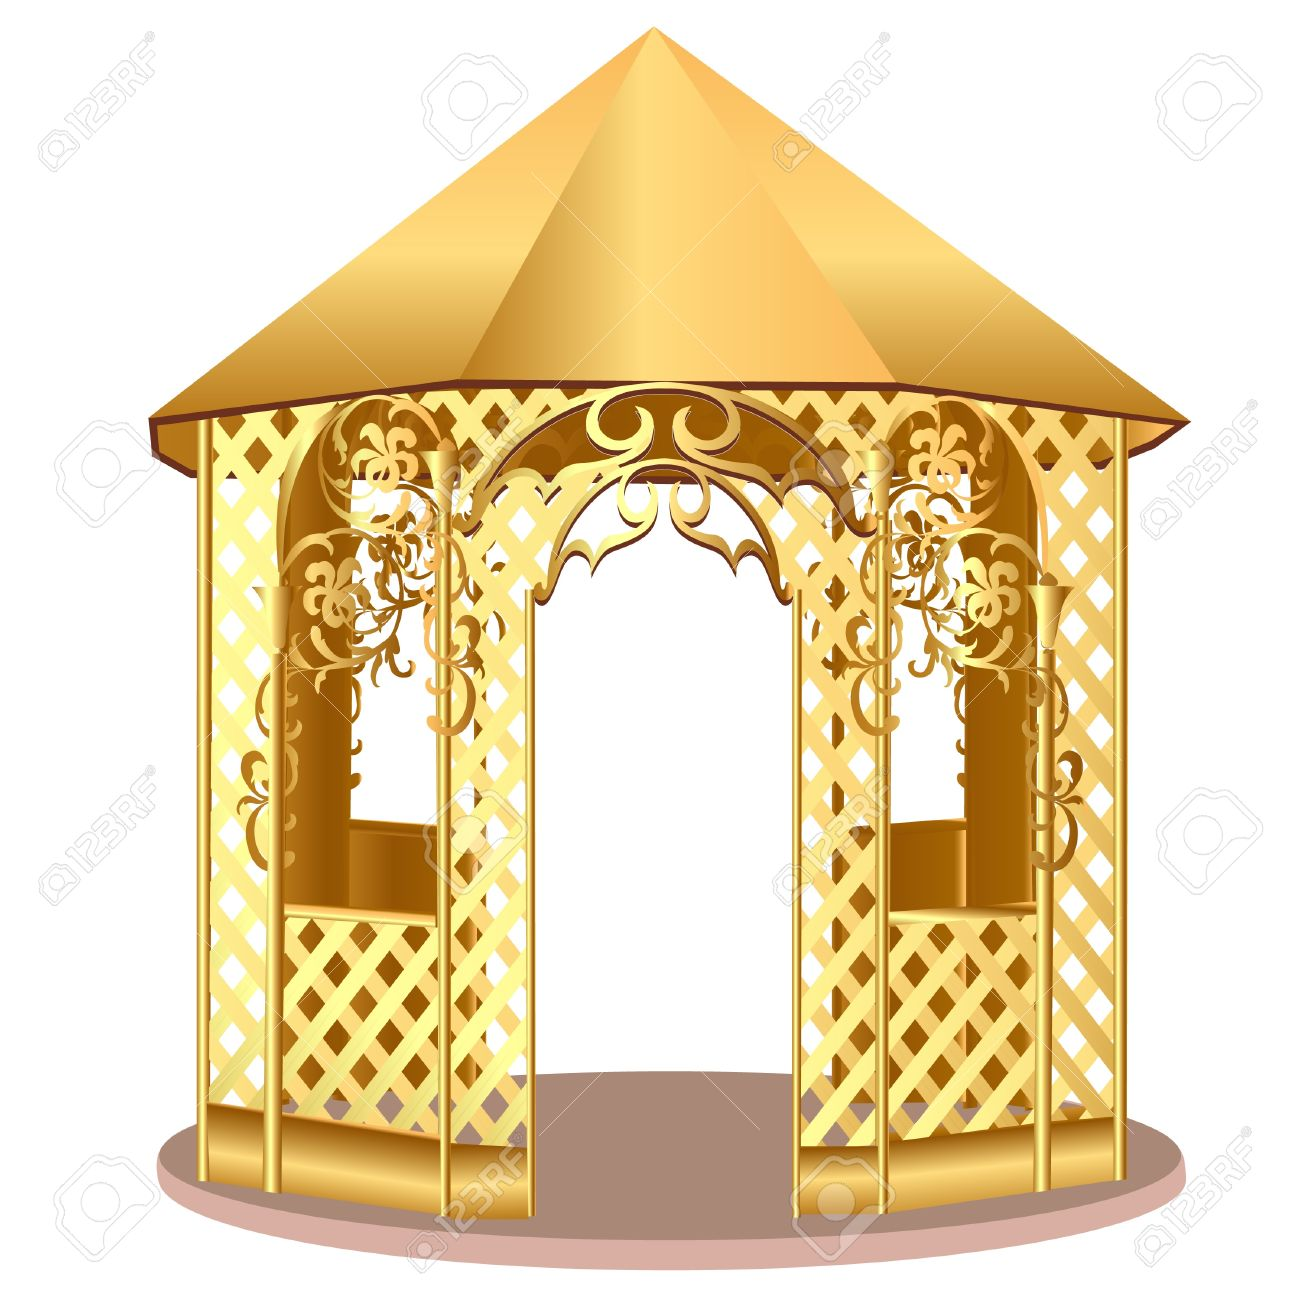 Free Clipart Of Summer House.